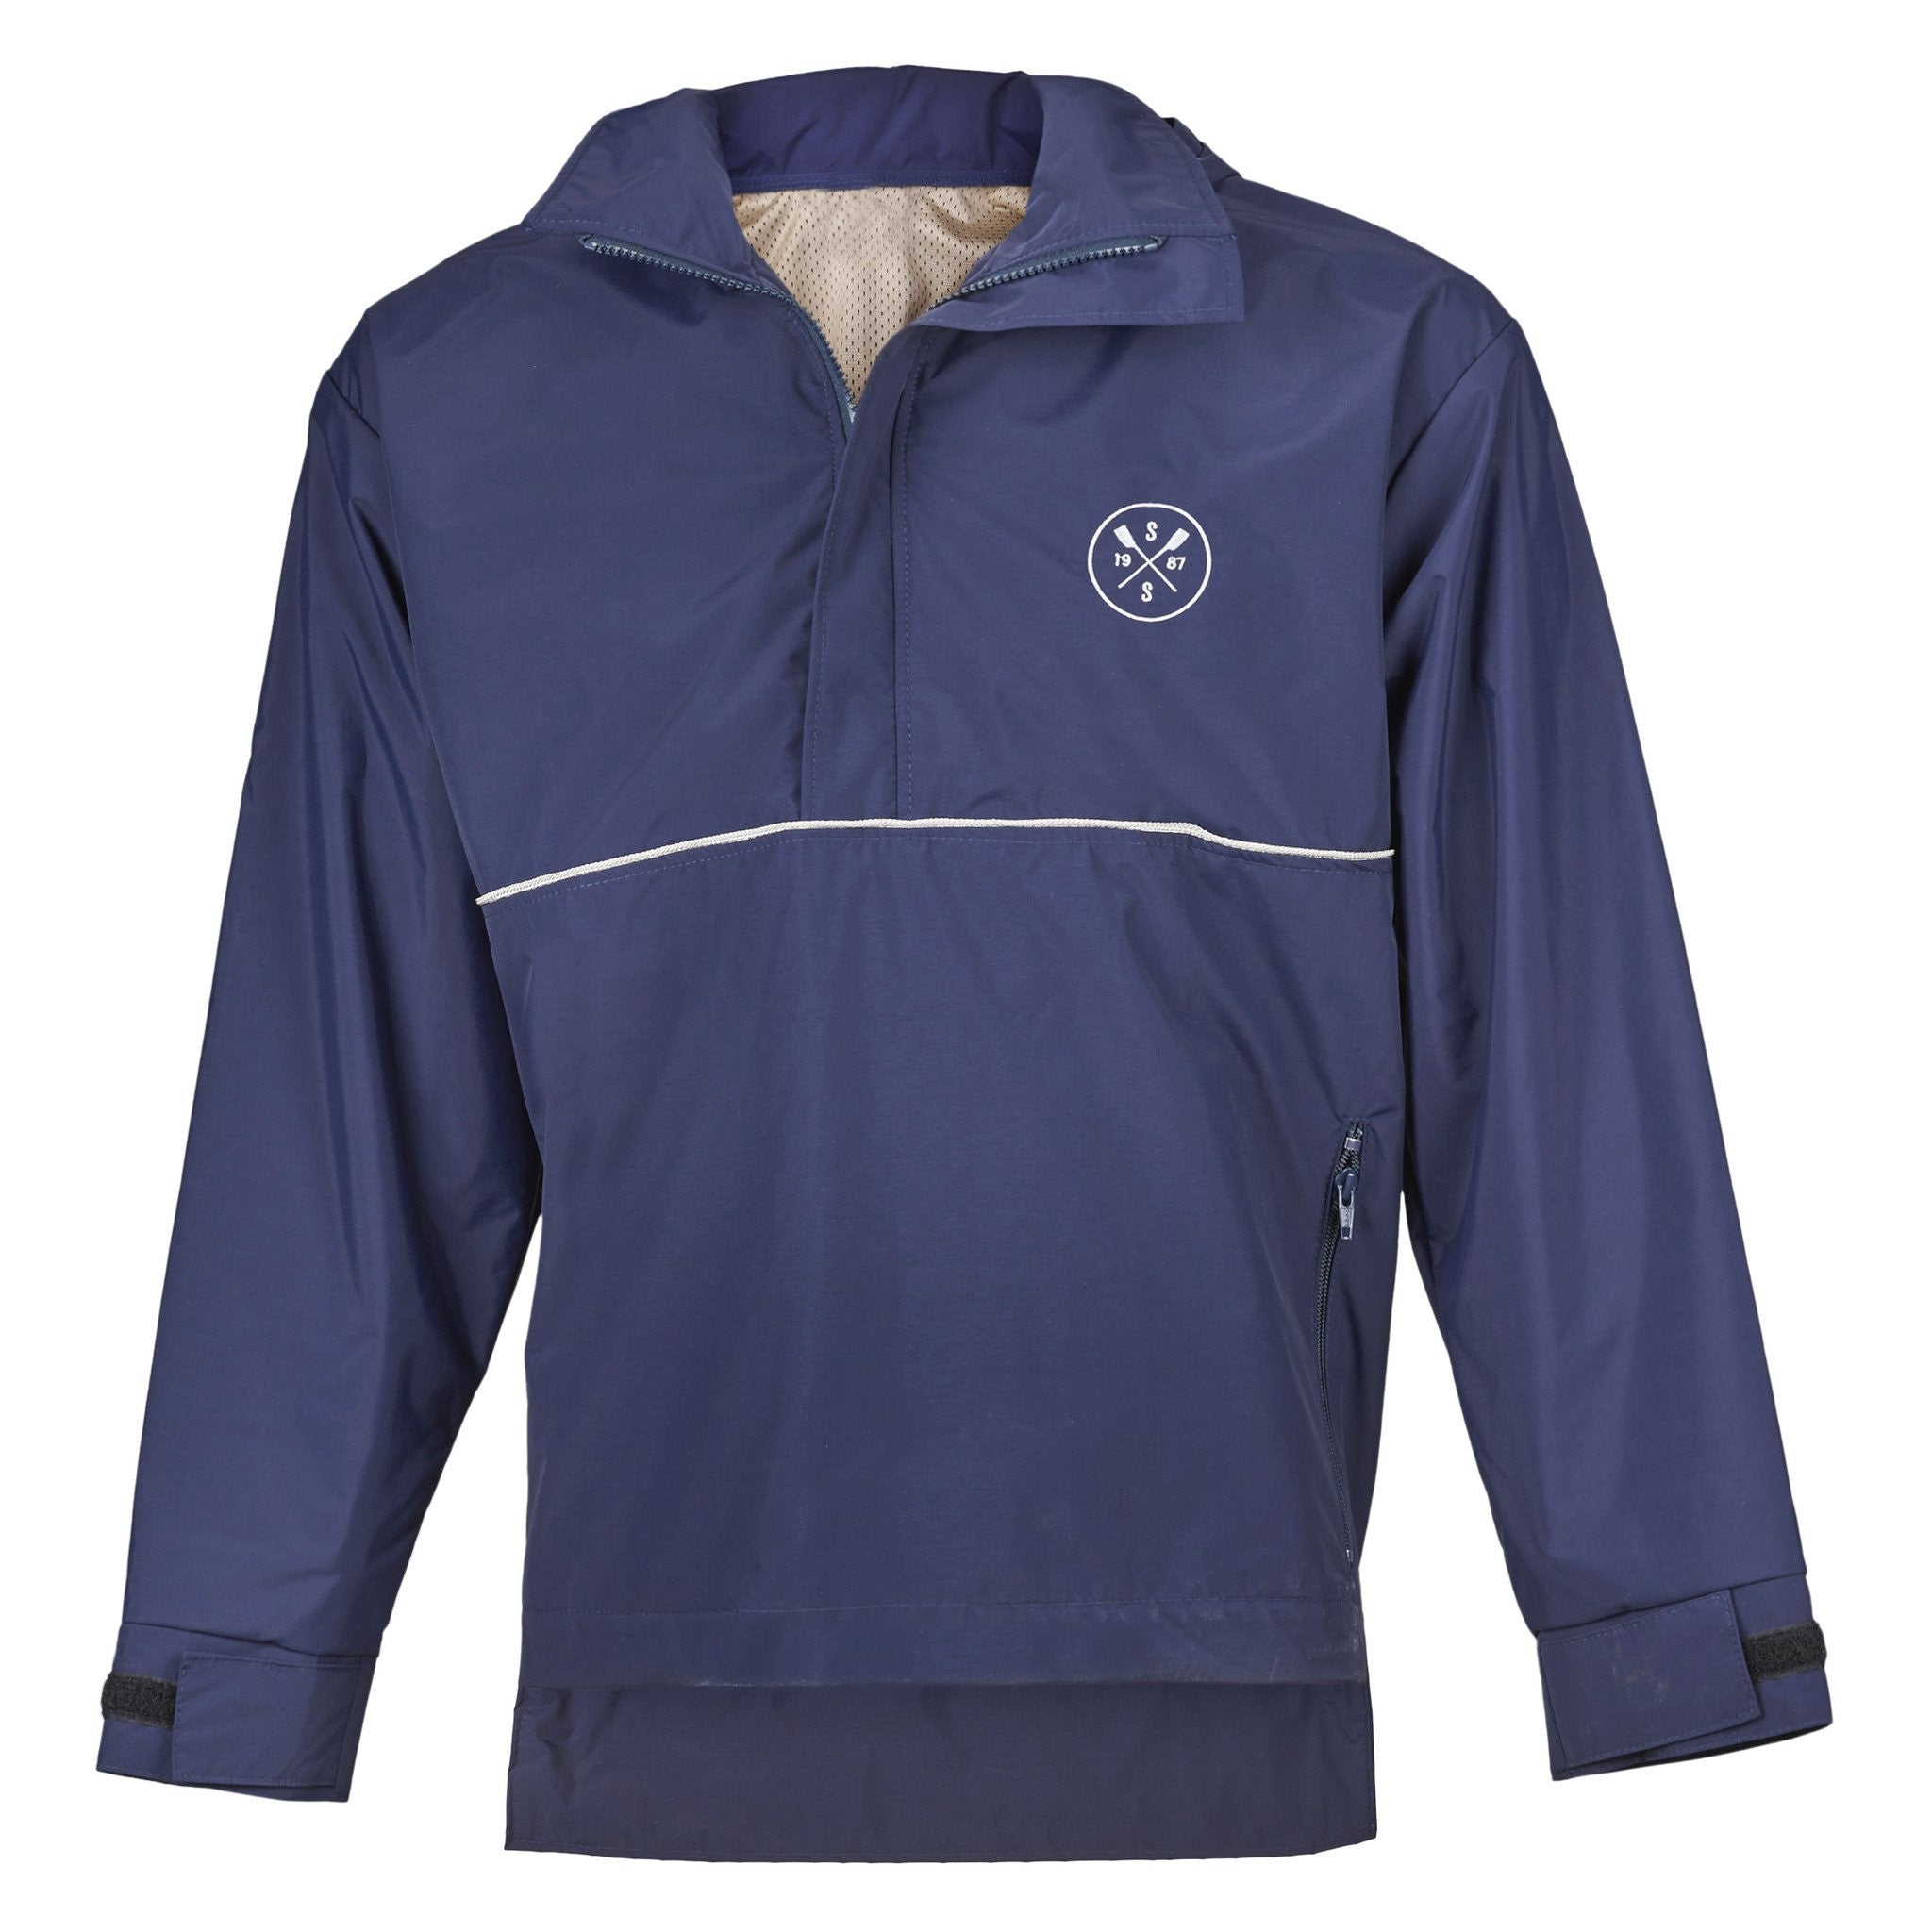 SxS Performance Ultra Jacket Hydrotex (Navy)